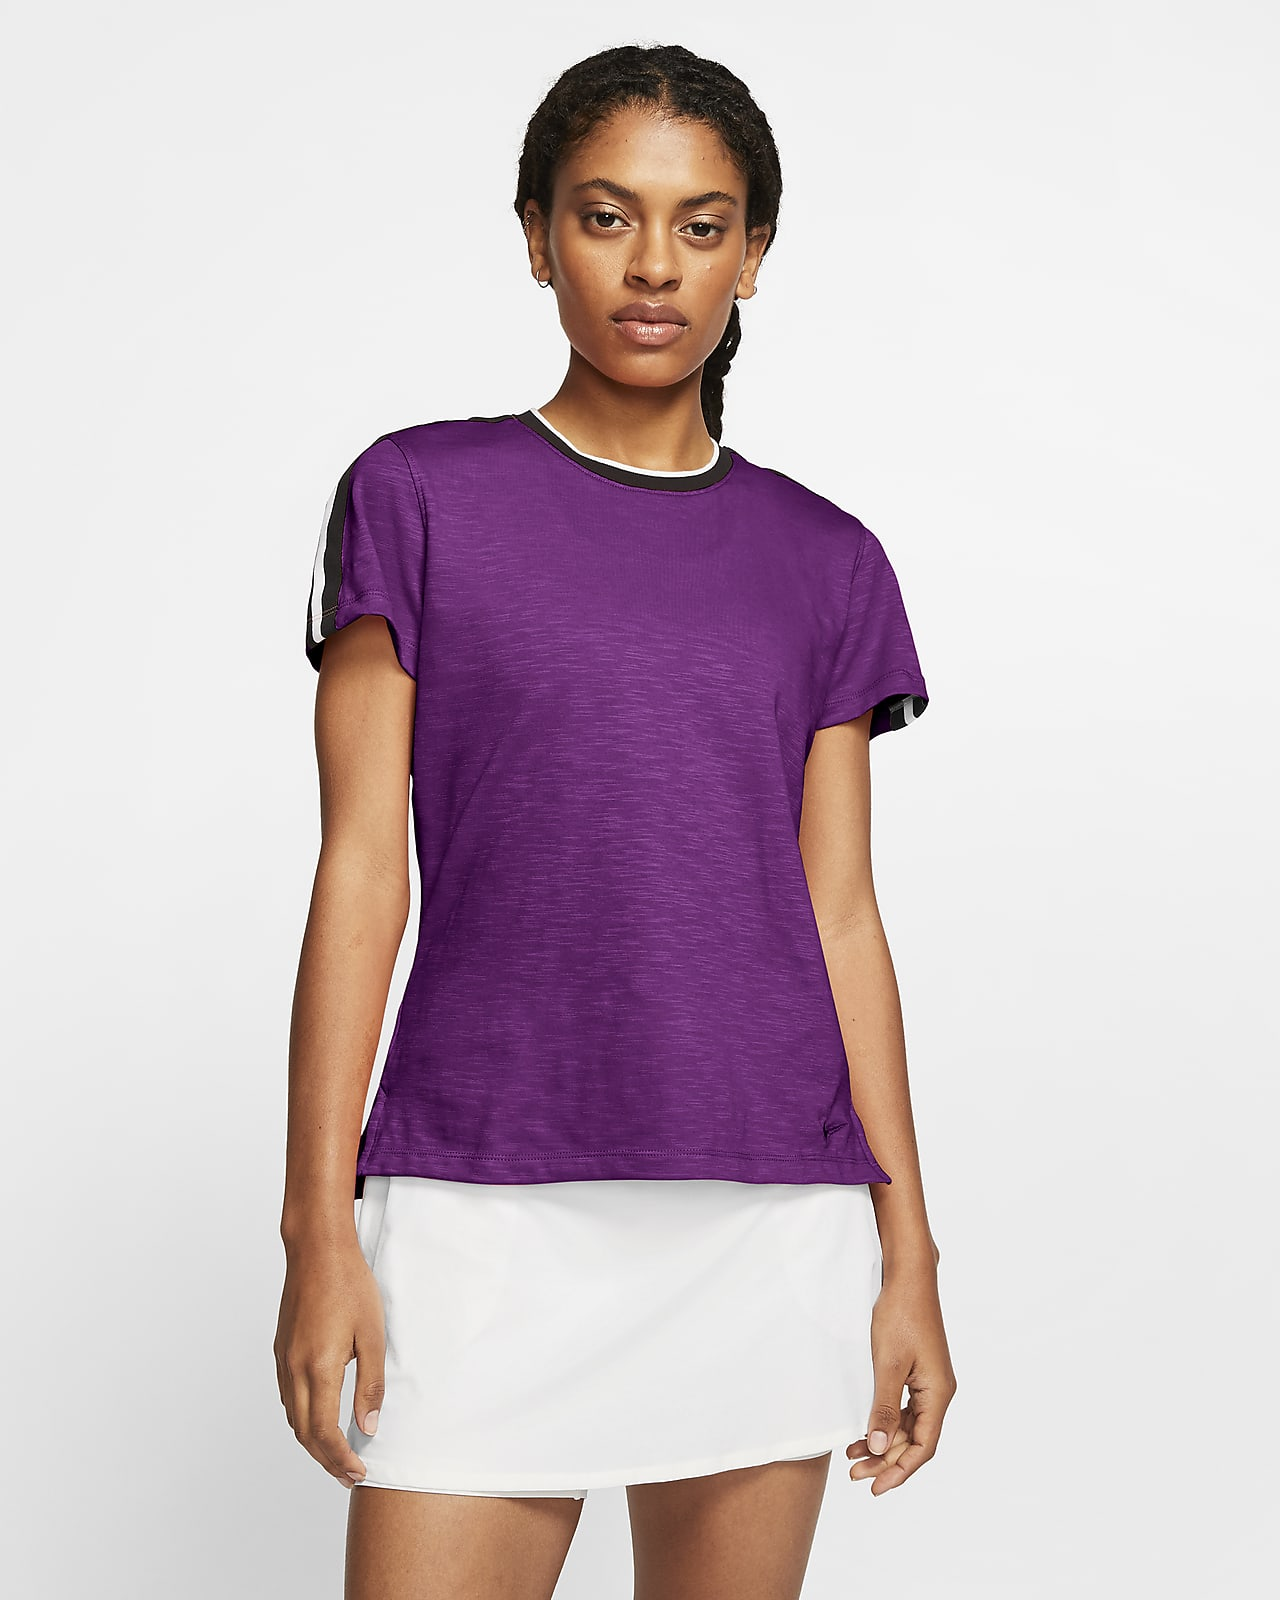 Nike Dri-FIT UV Women's Short-Sleeve Golf Top